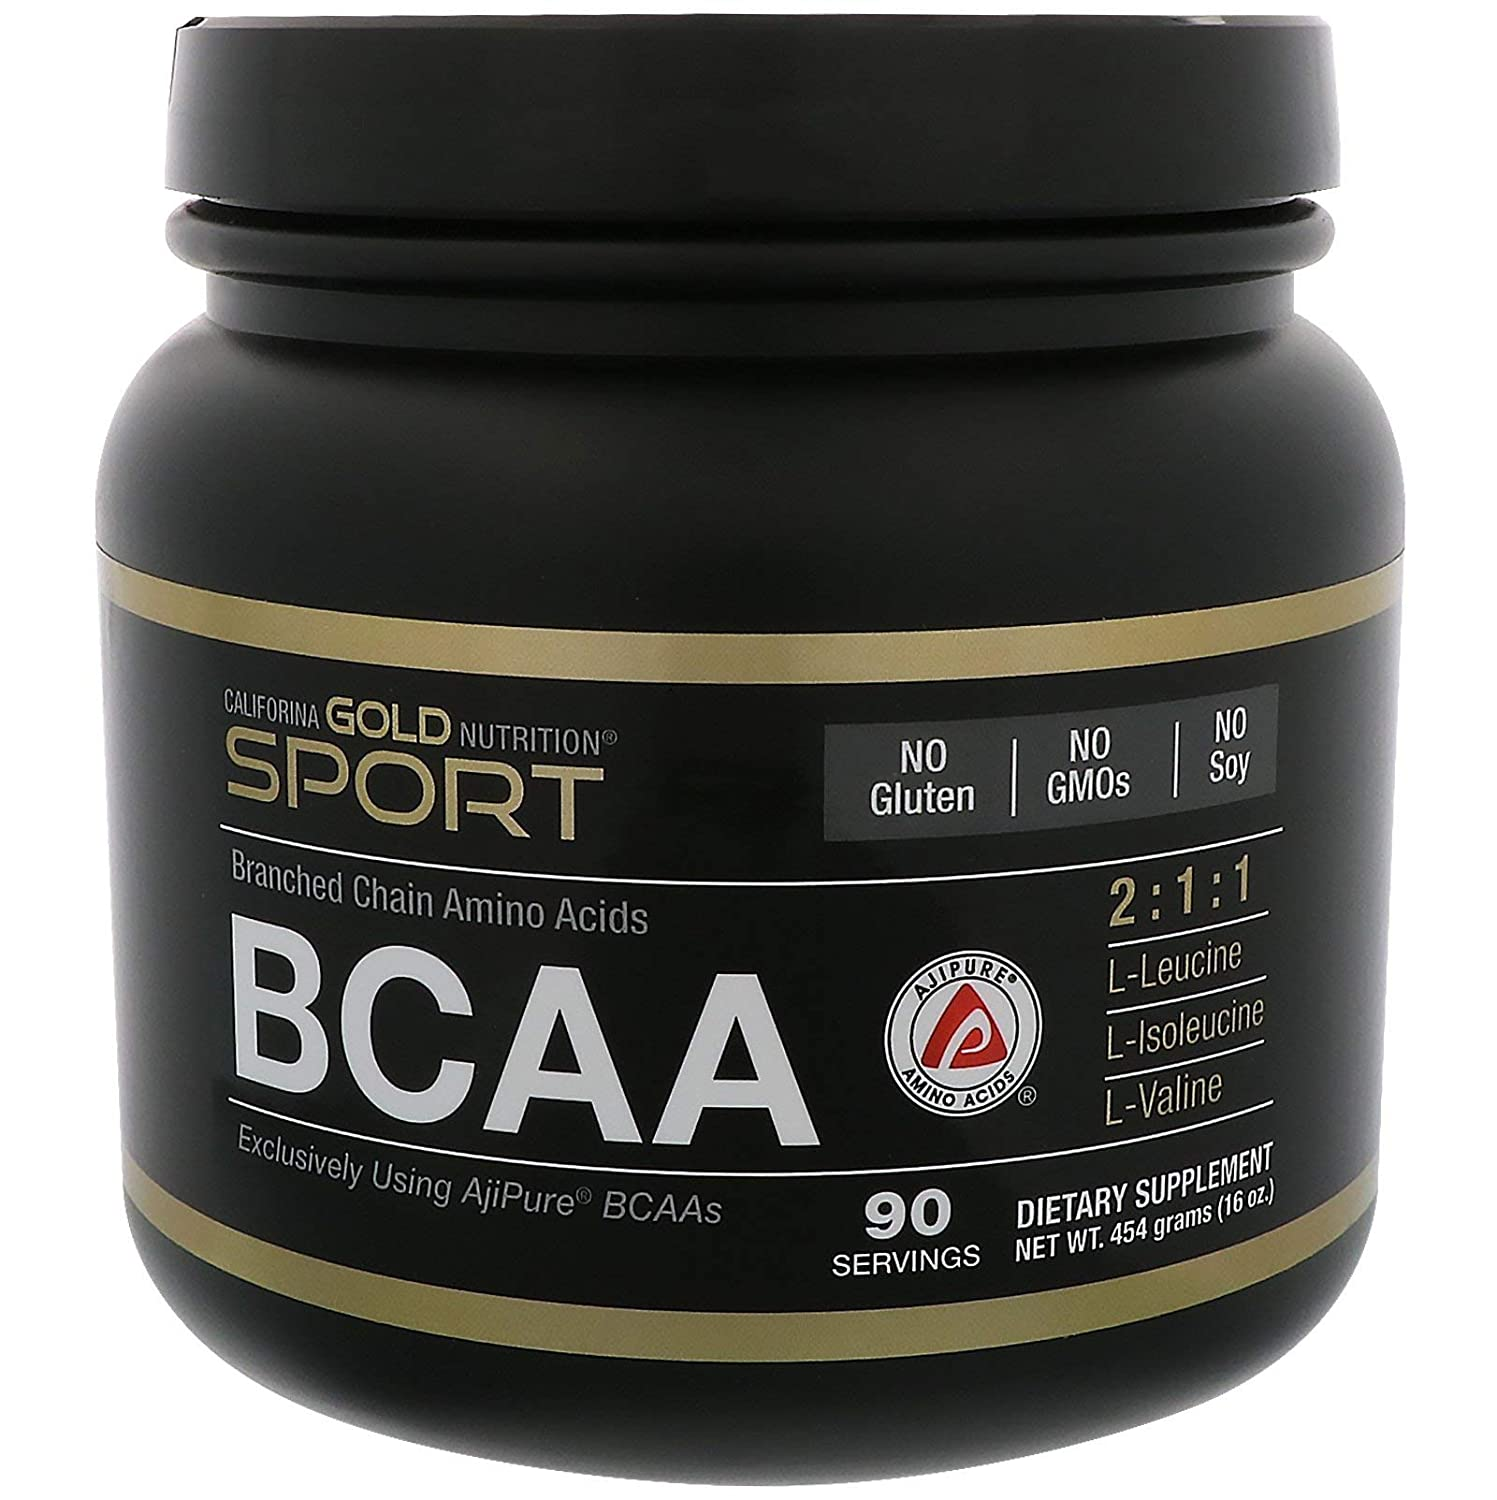 California Gold Nutrition, BCAA, AjiPure, Branched Chain Amino Acids Powder, 16 oz 454 g , Milk-Free, Egg-Free, Fish Free, Gluten-Free, Shellfish Free, Soy-Free, Sugar-Free, Wheat-Free, CGN